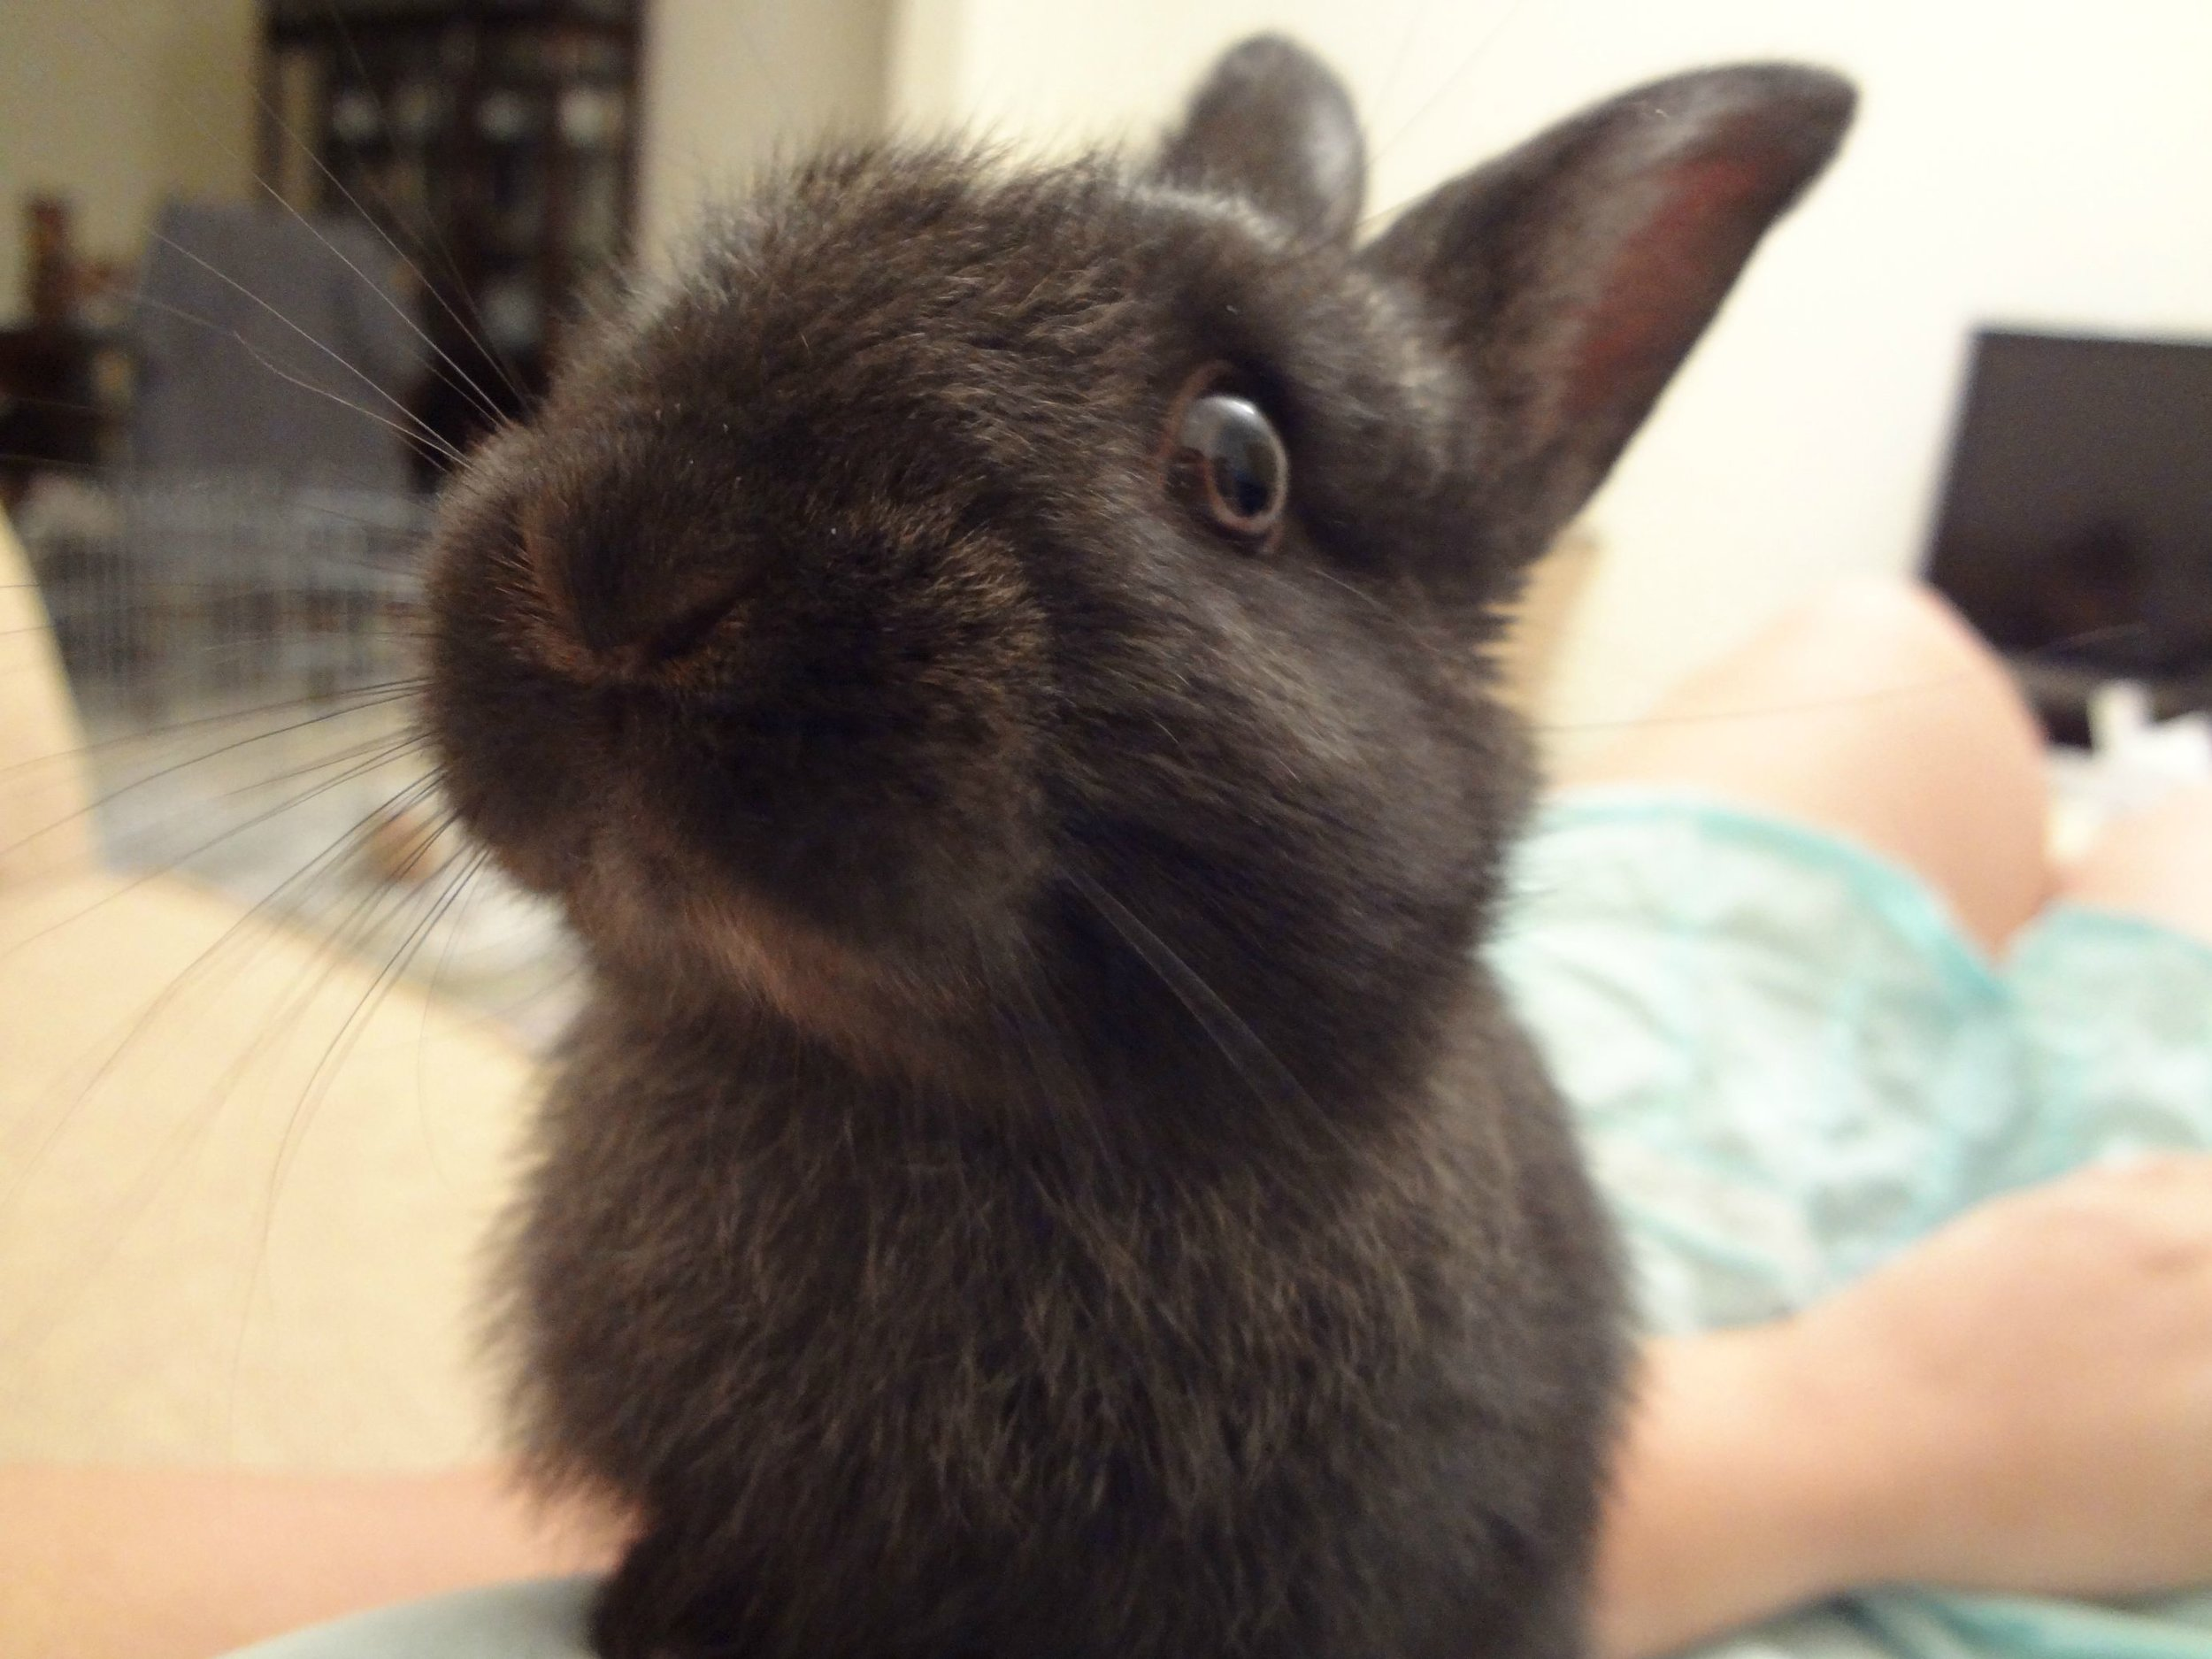 Bunny Inquiringly Looks at Owner for a Treat